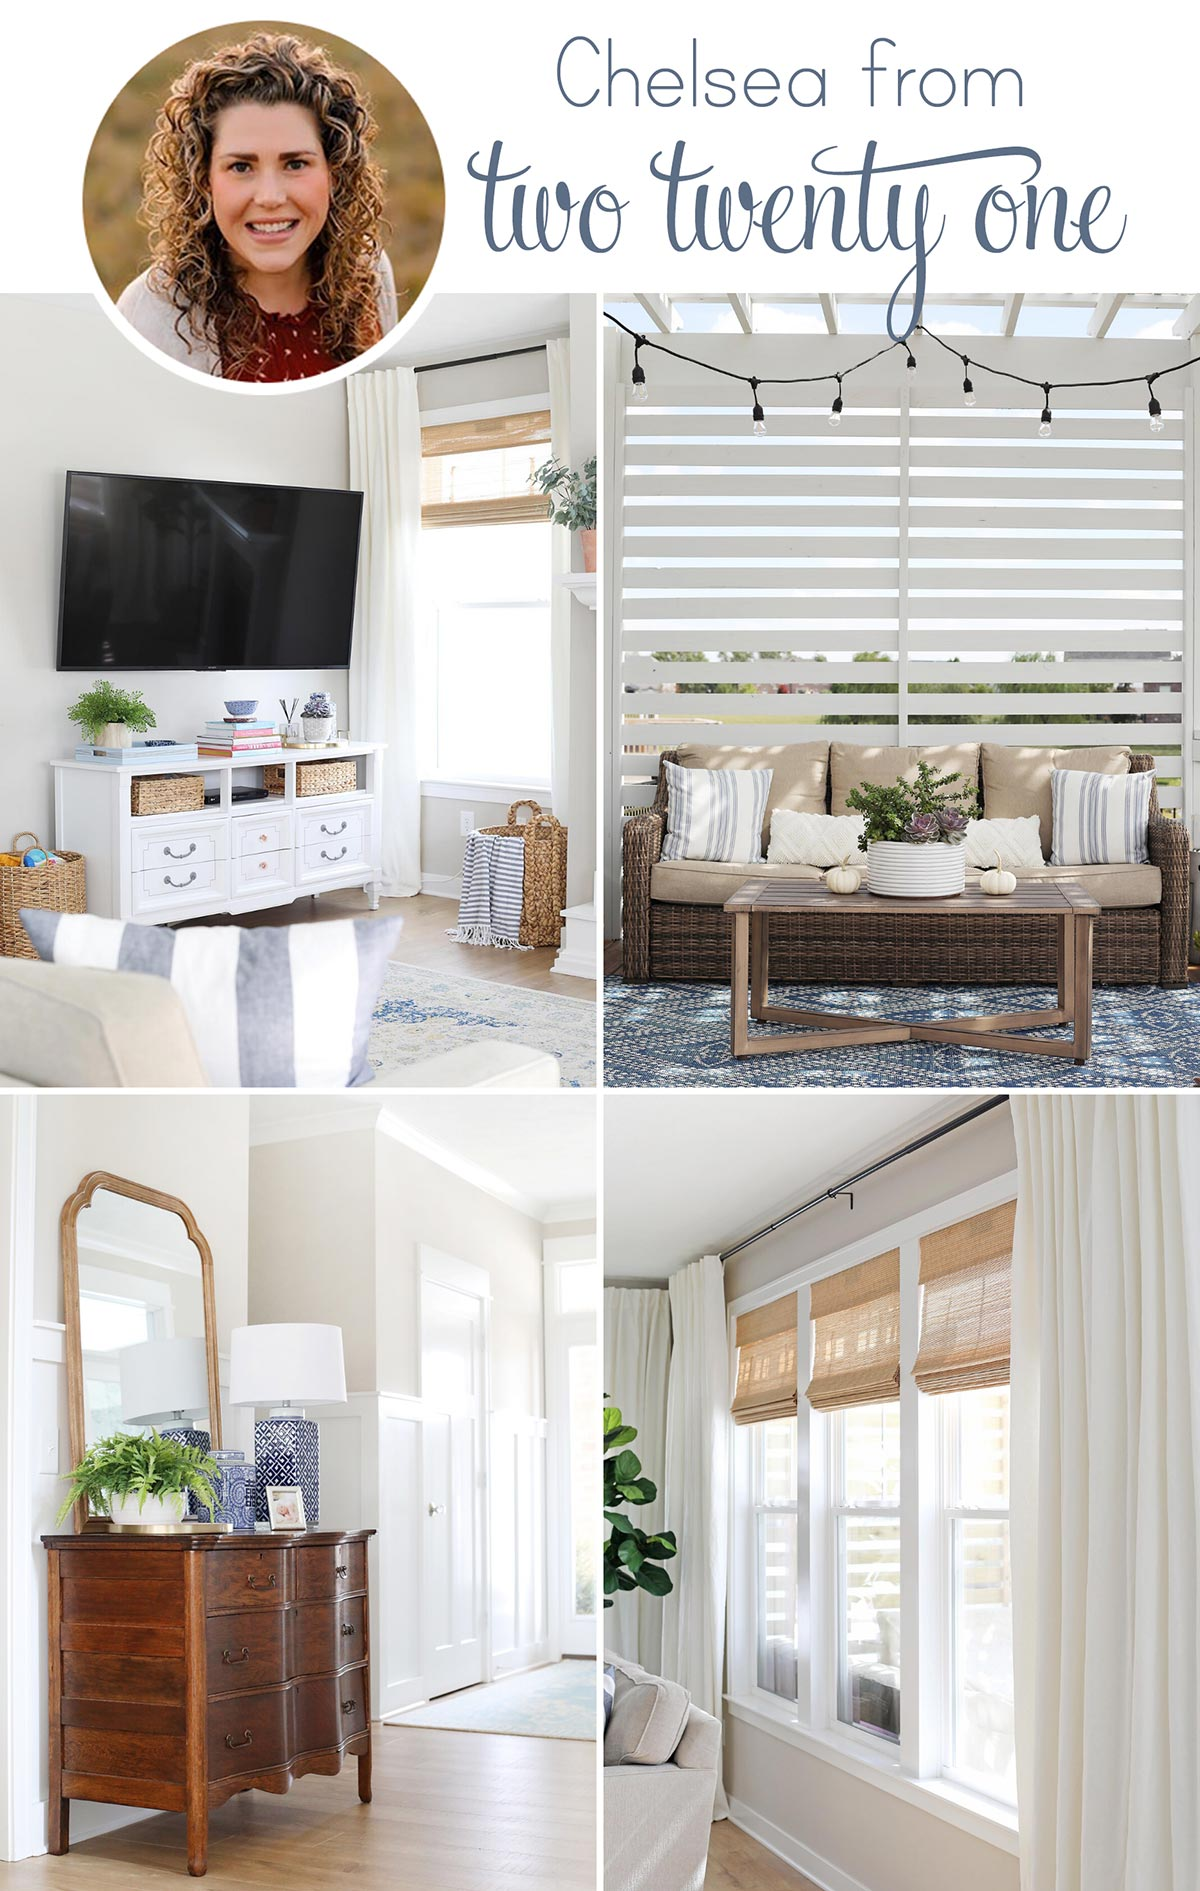 Home decor ideas from Two Twenty One.